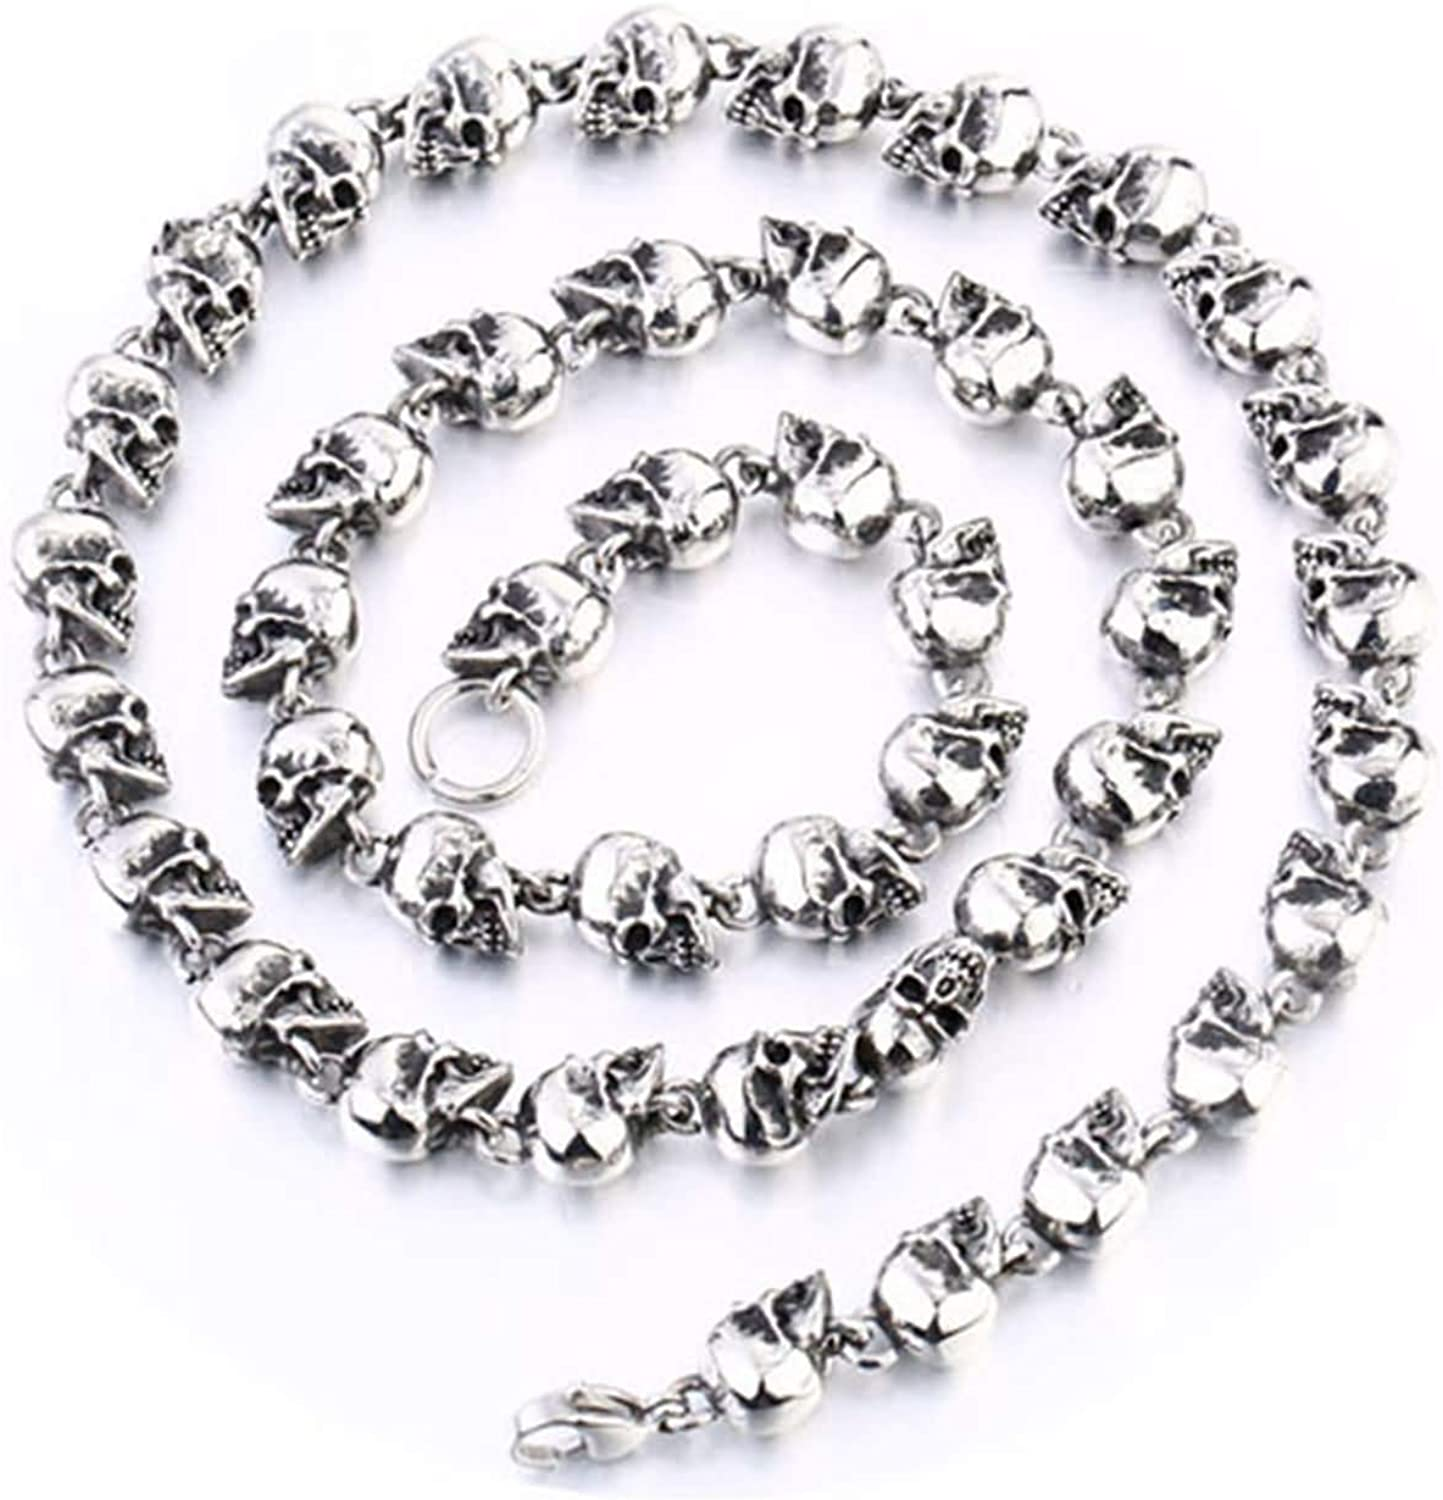 Aokarry 316L Stainless Steel 9.5MM Chain Necklace for Men Silver Skull Chain Punk Chain Men Necklace